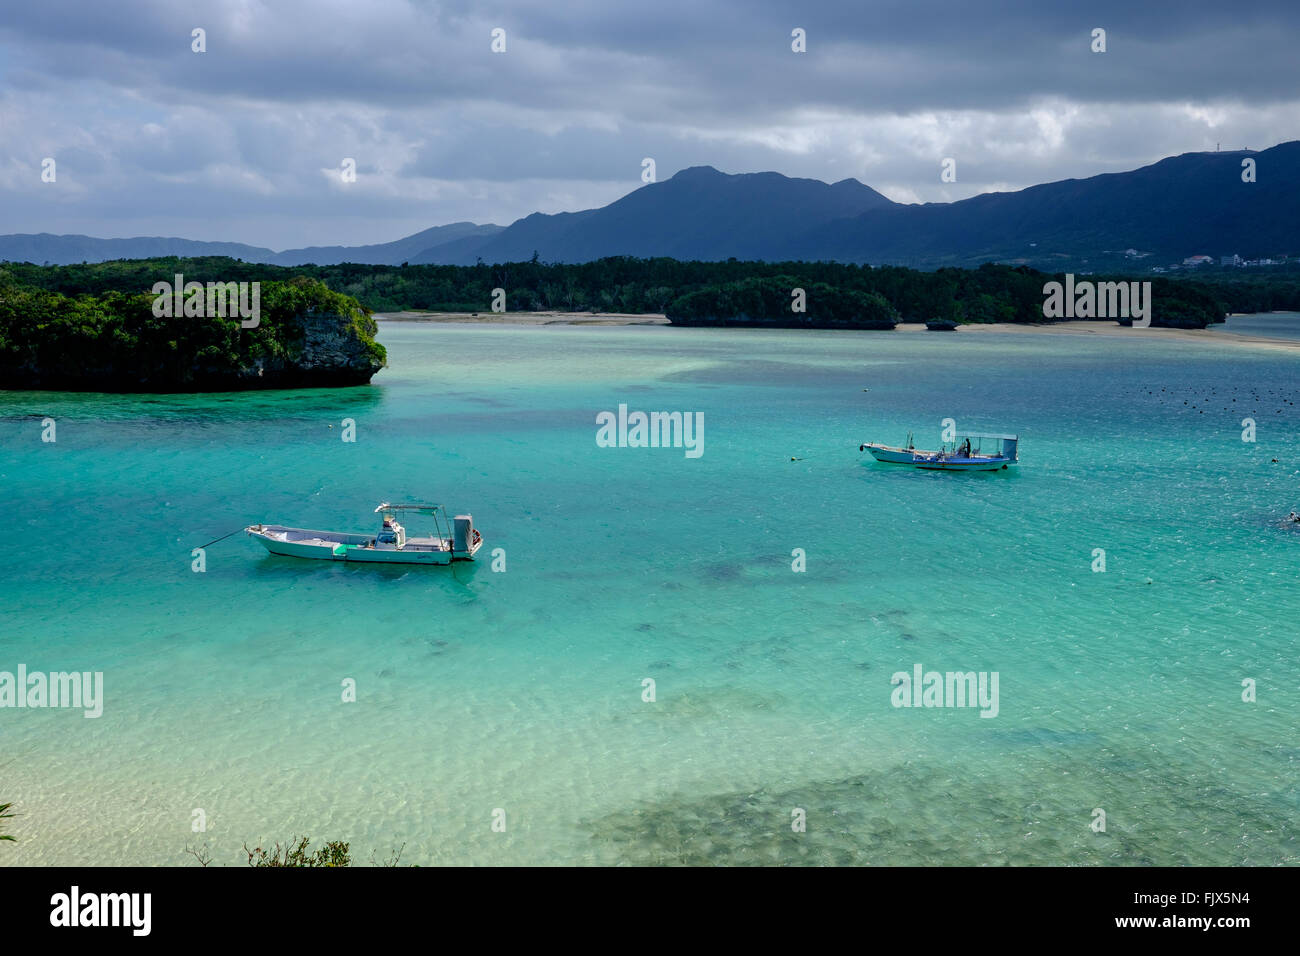 High Angle View Of Boats Moored On Sea At Ishigaki - Stock Image